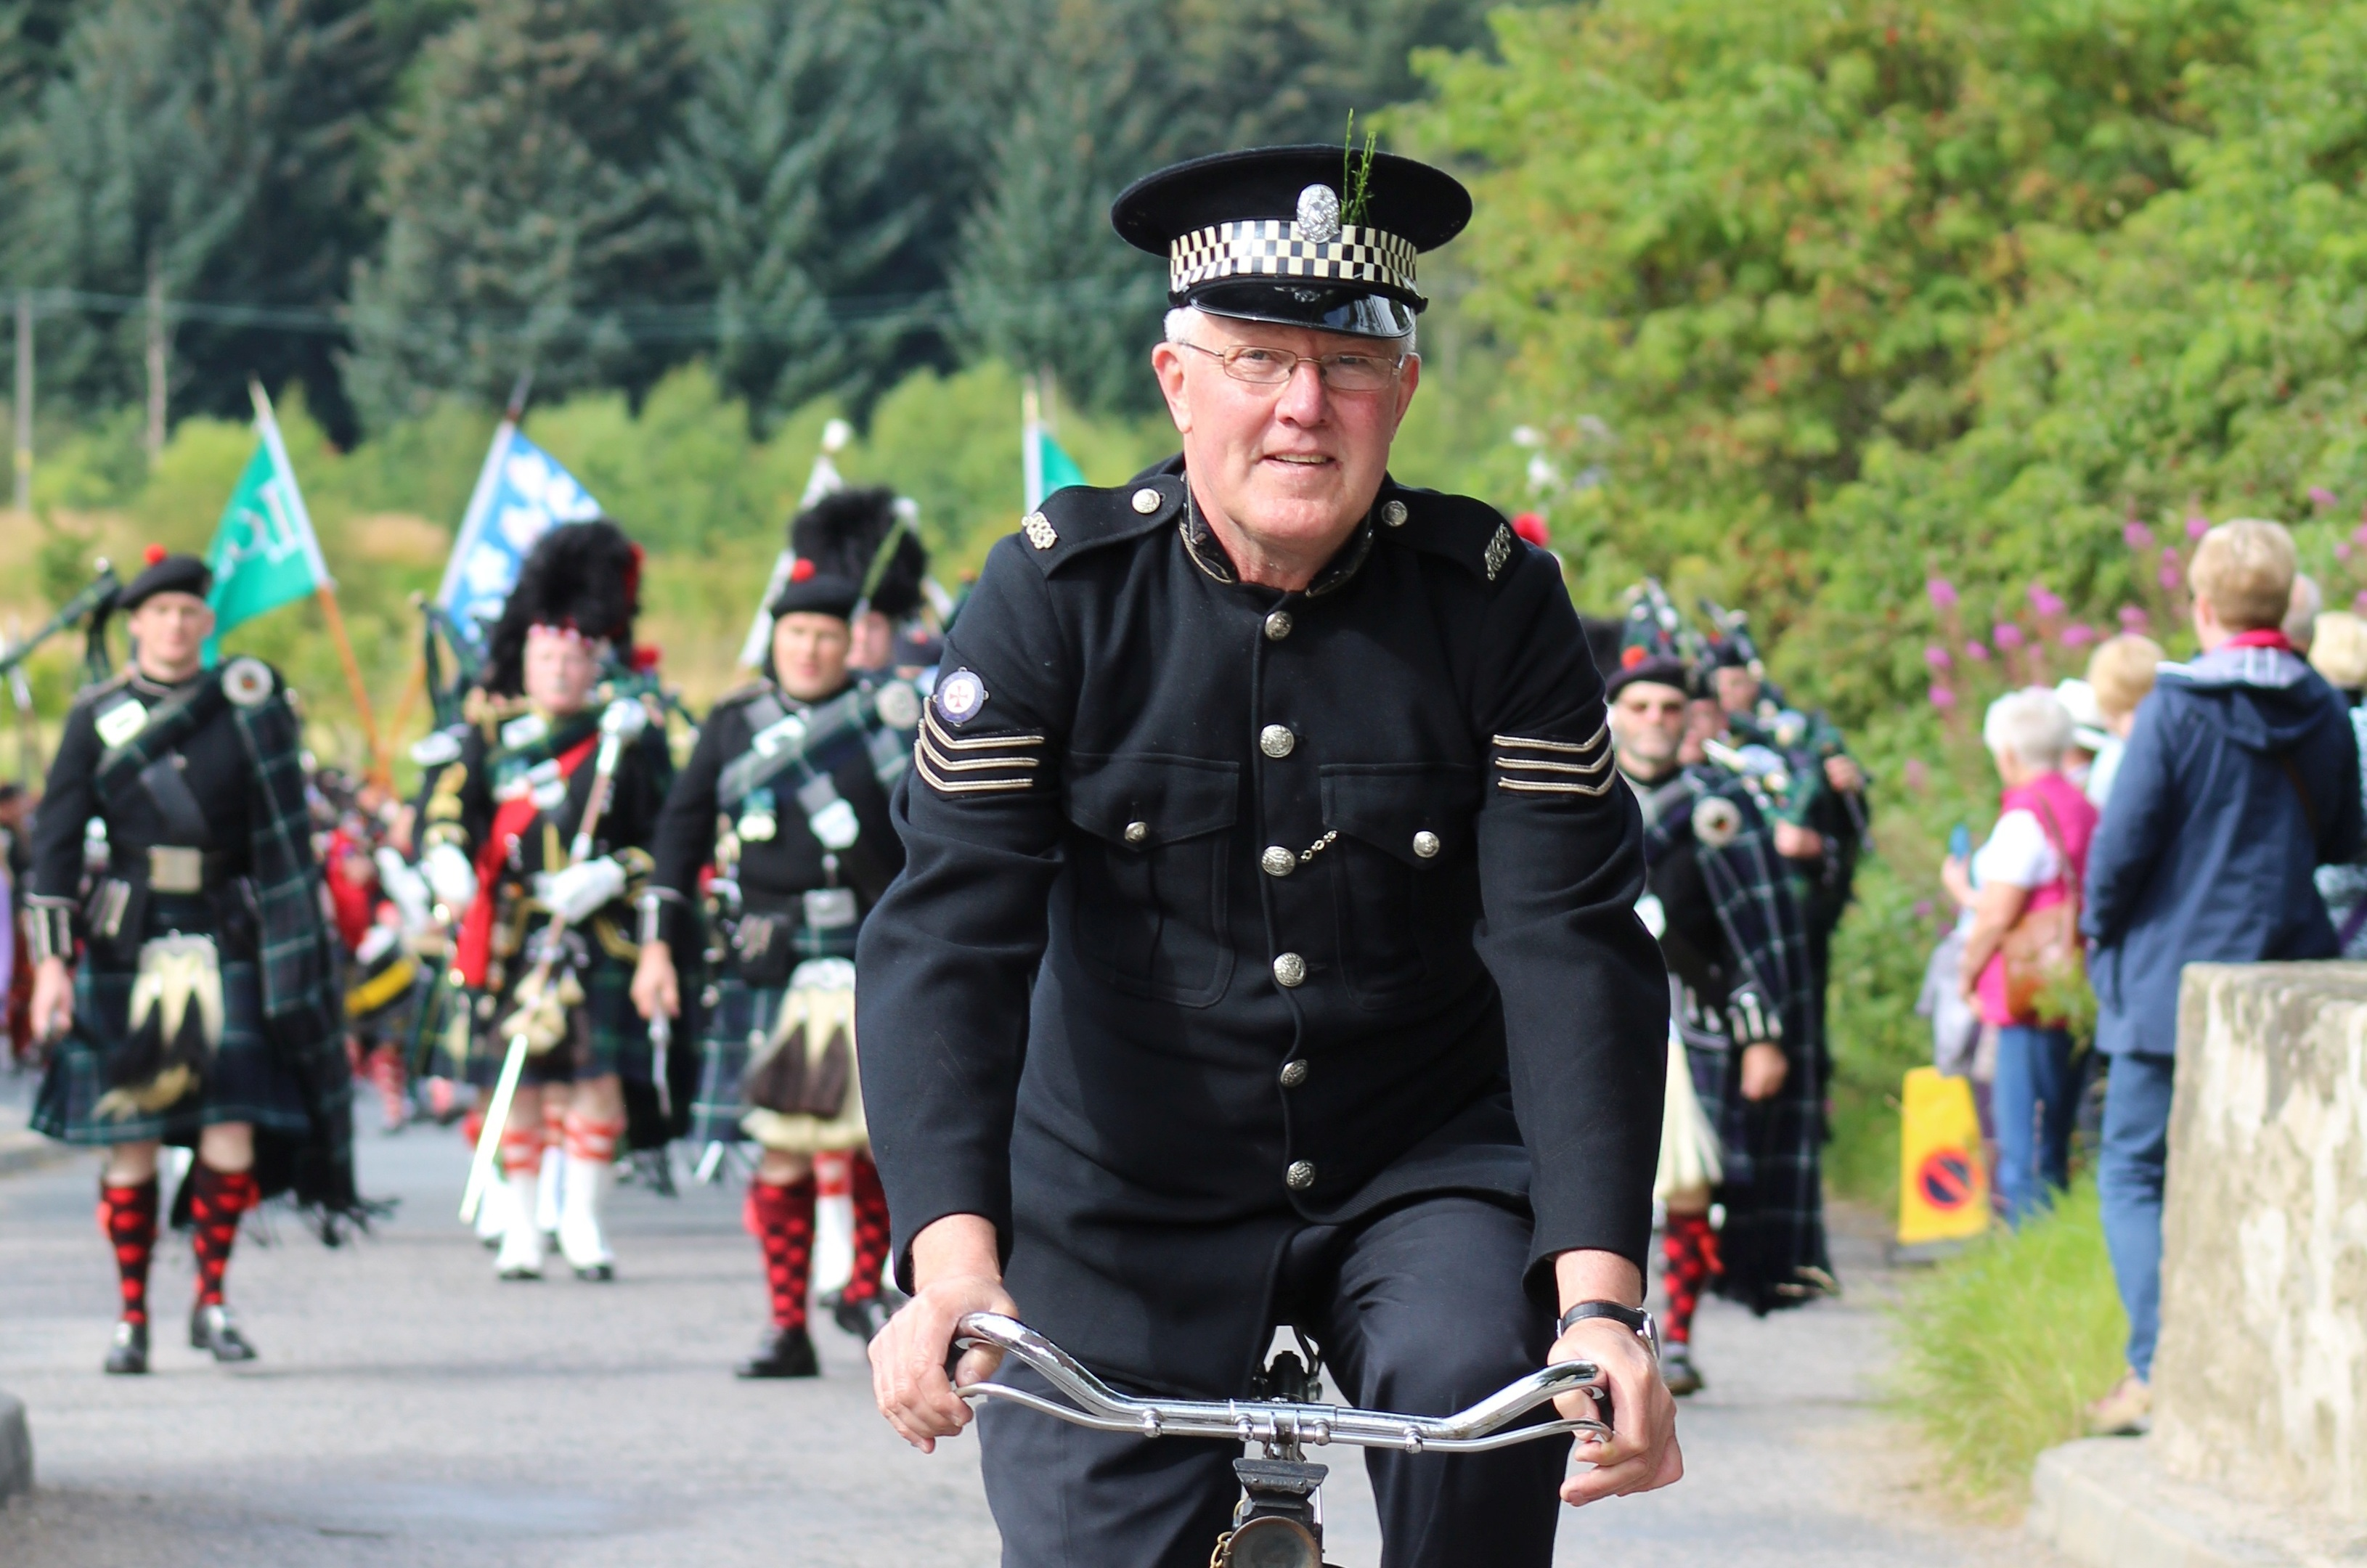 Jim Mitchell, the bobby on the bike, escorted the Lonach March